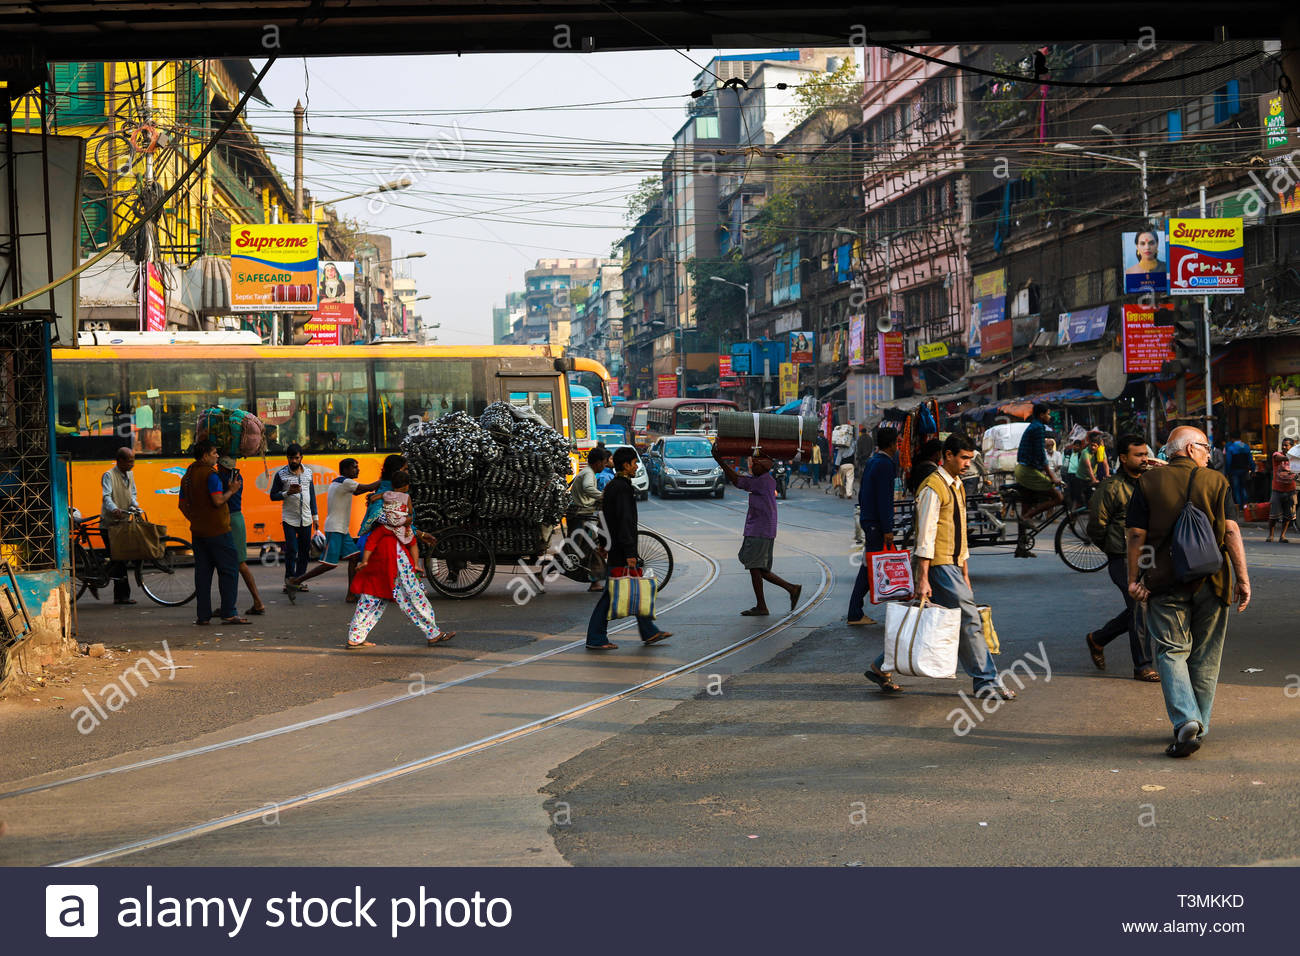 People walking on streets of kolkata and crossing busy road full of traffic - Stock Image